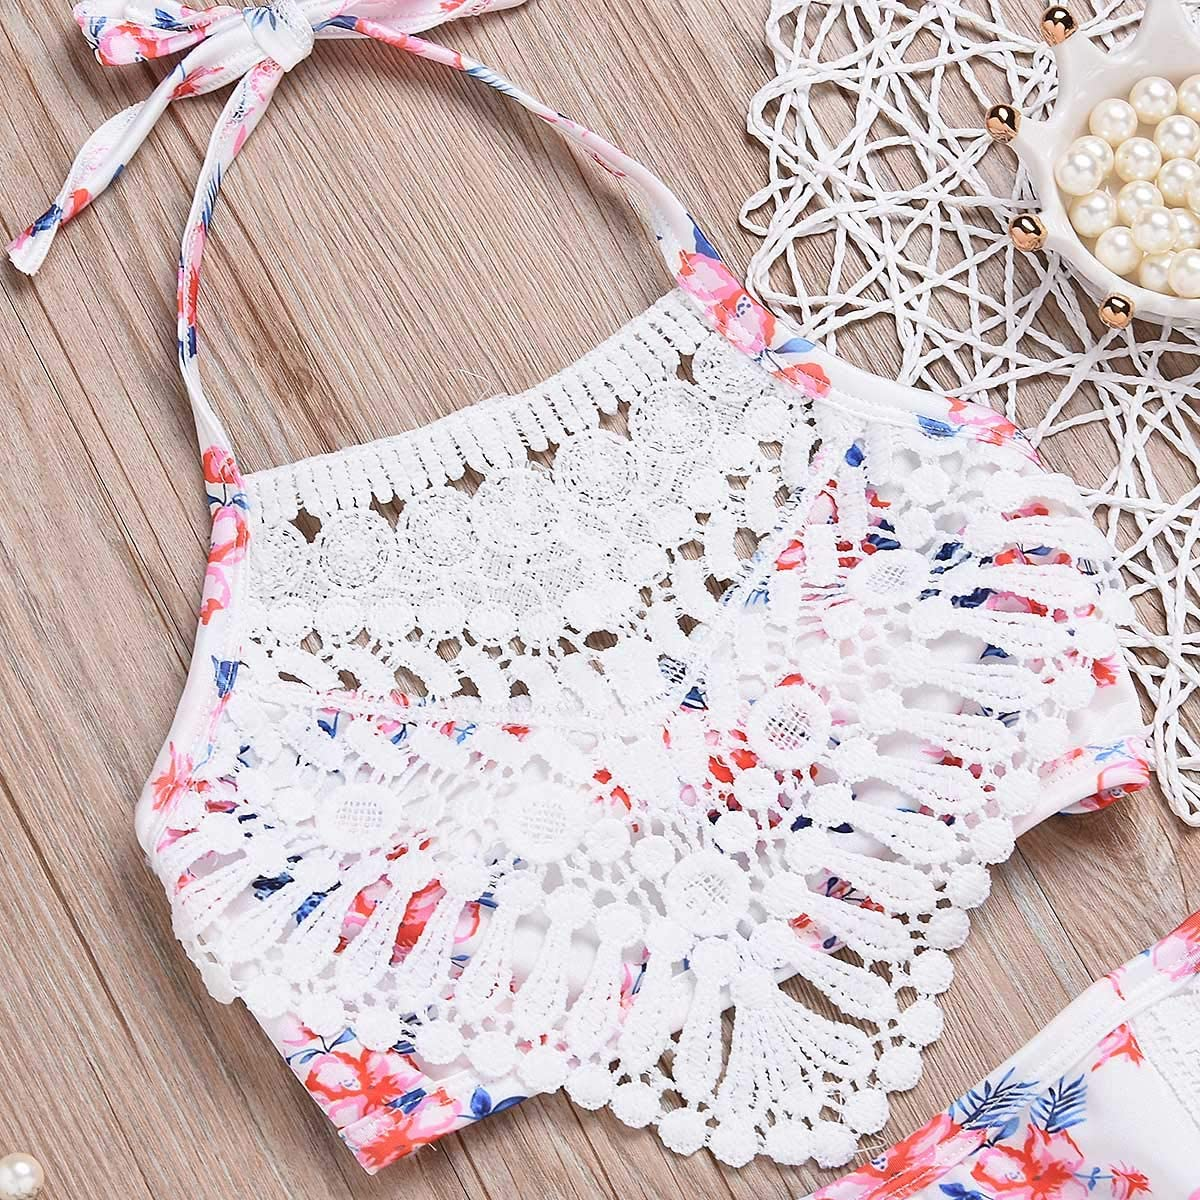 Shorts Bathing Suits Toddler Baby Girl Swimsuit Floral Lace Sling Bikini Shell Flower Top